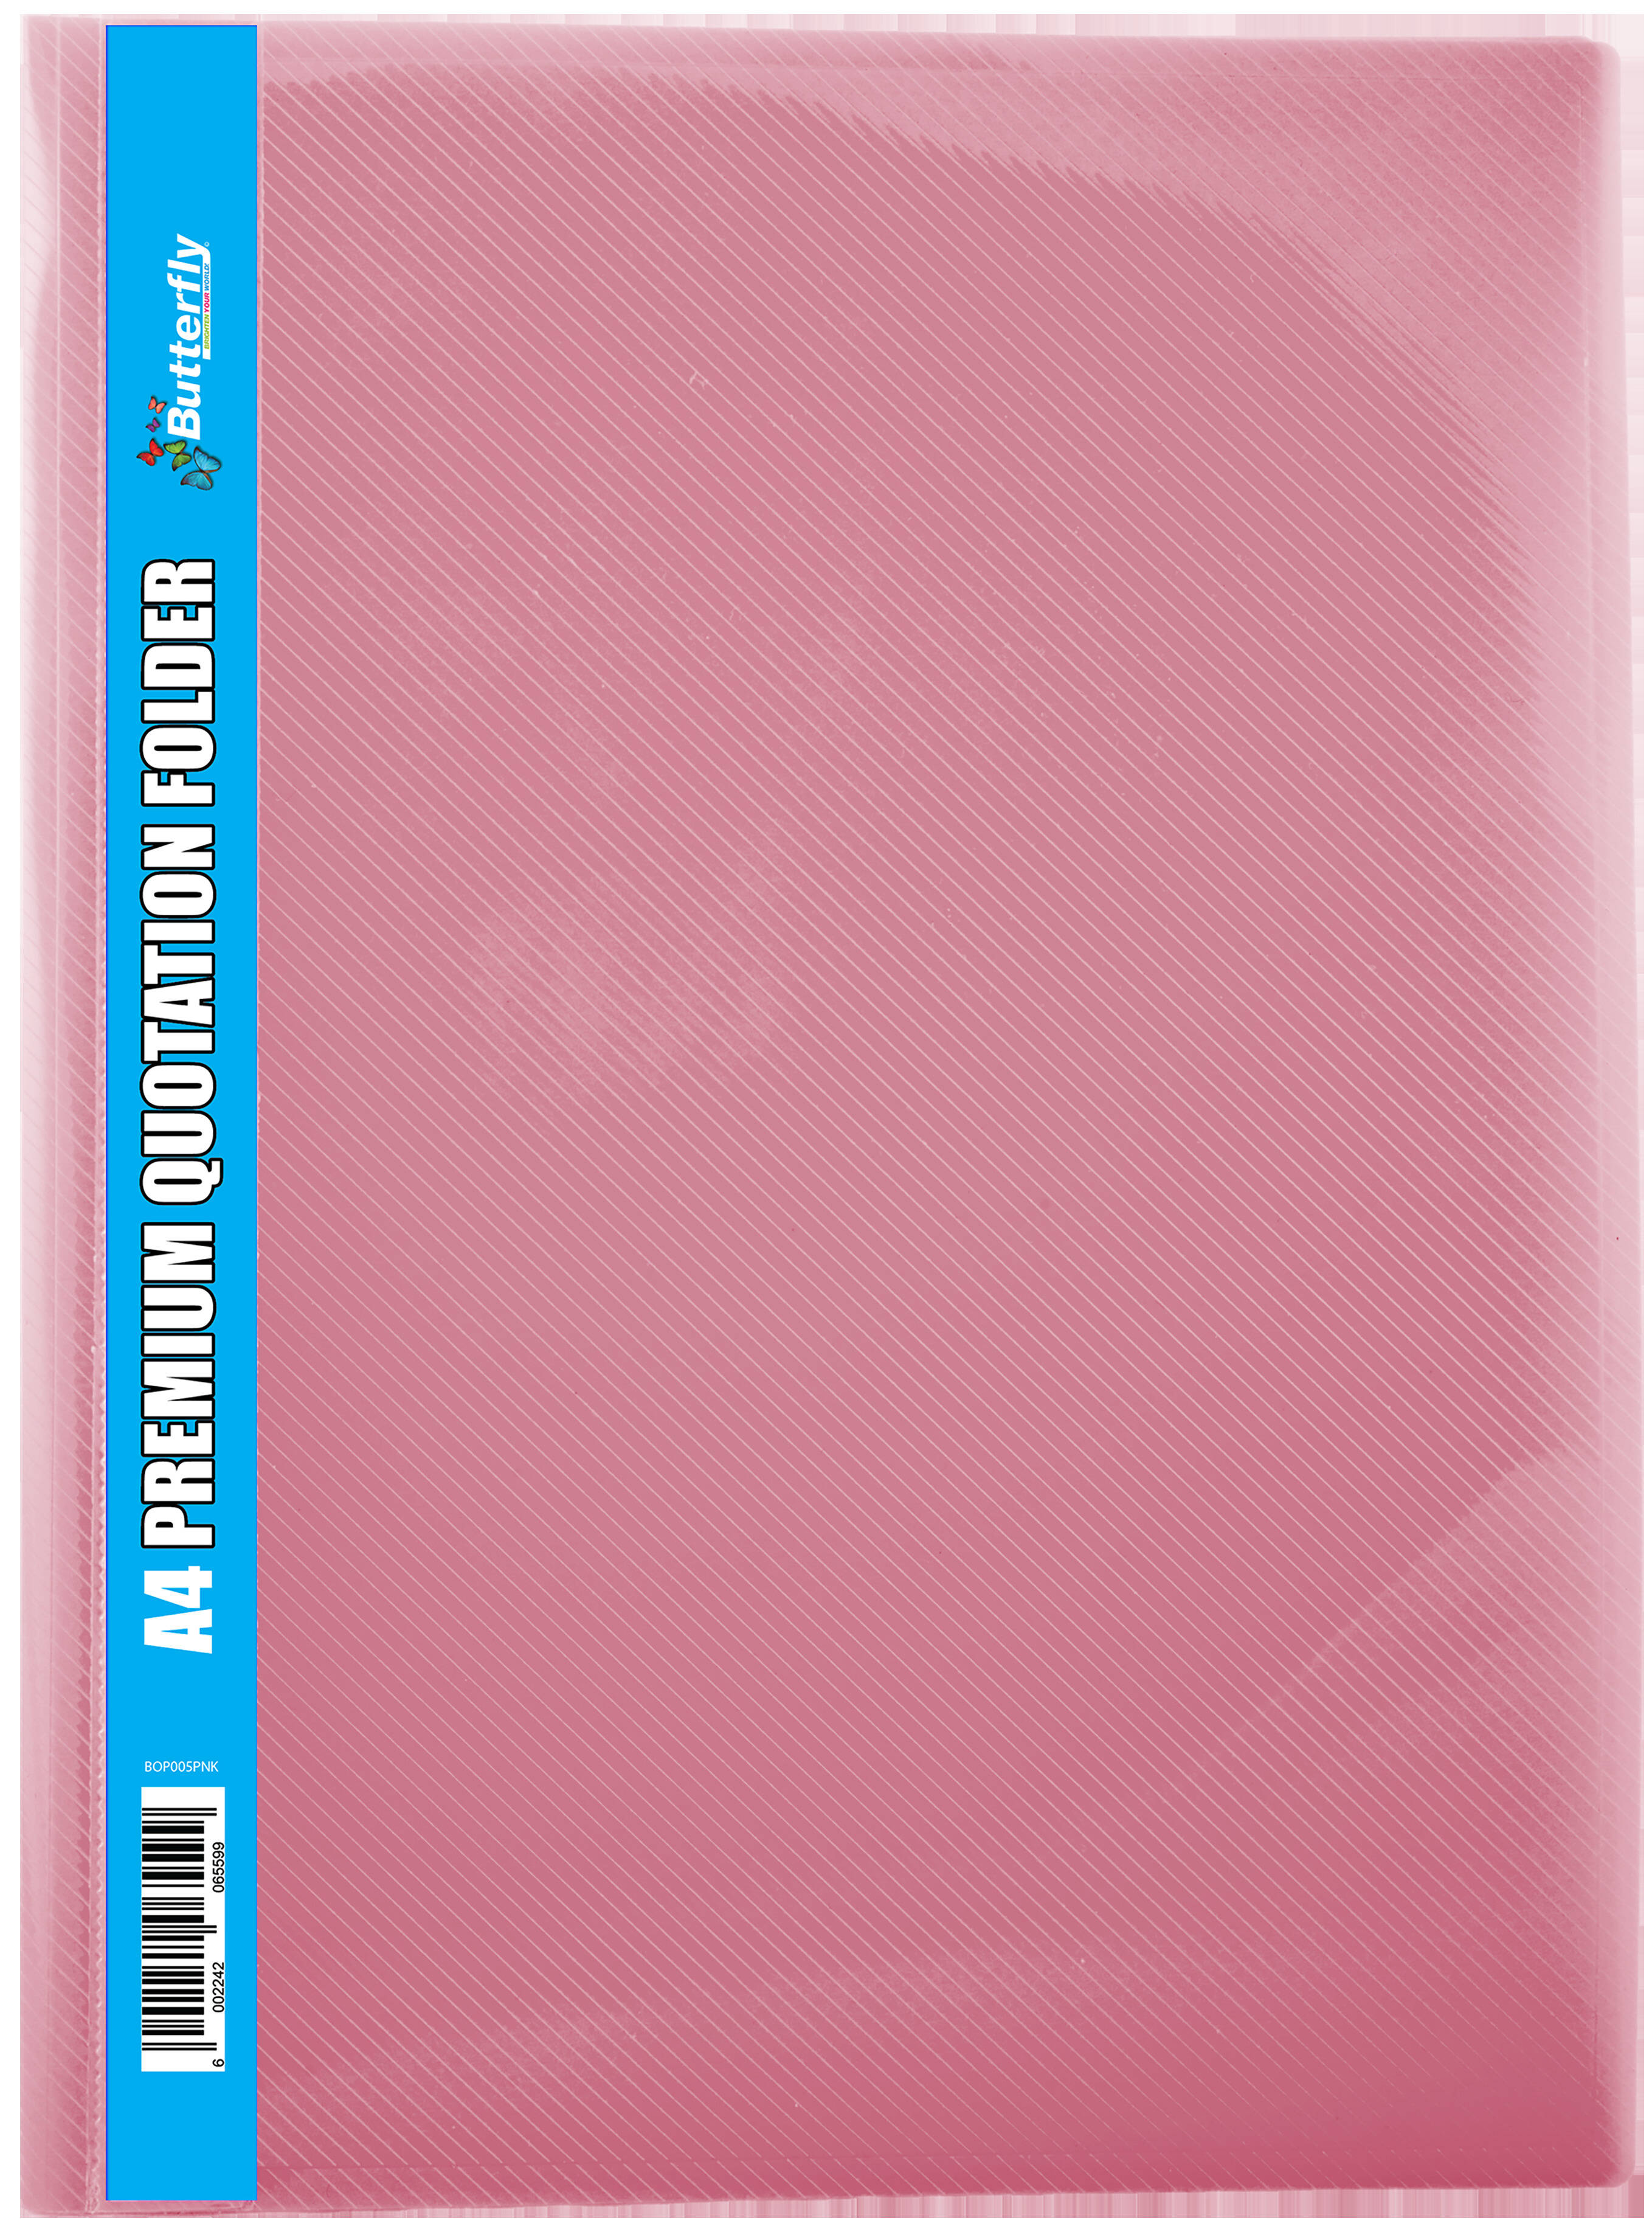 A4 Premium Quotation Folders - 400 Micron - Pink